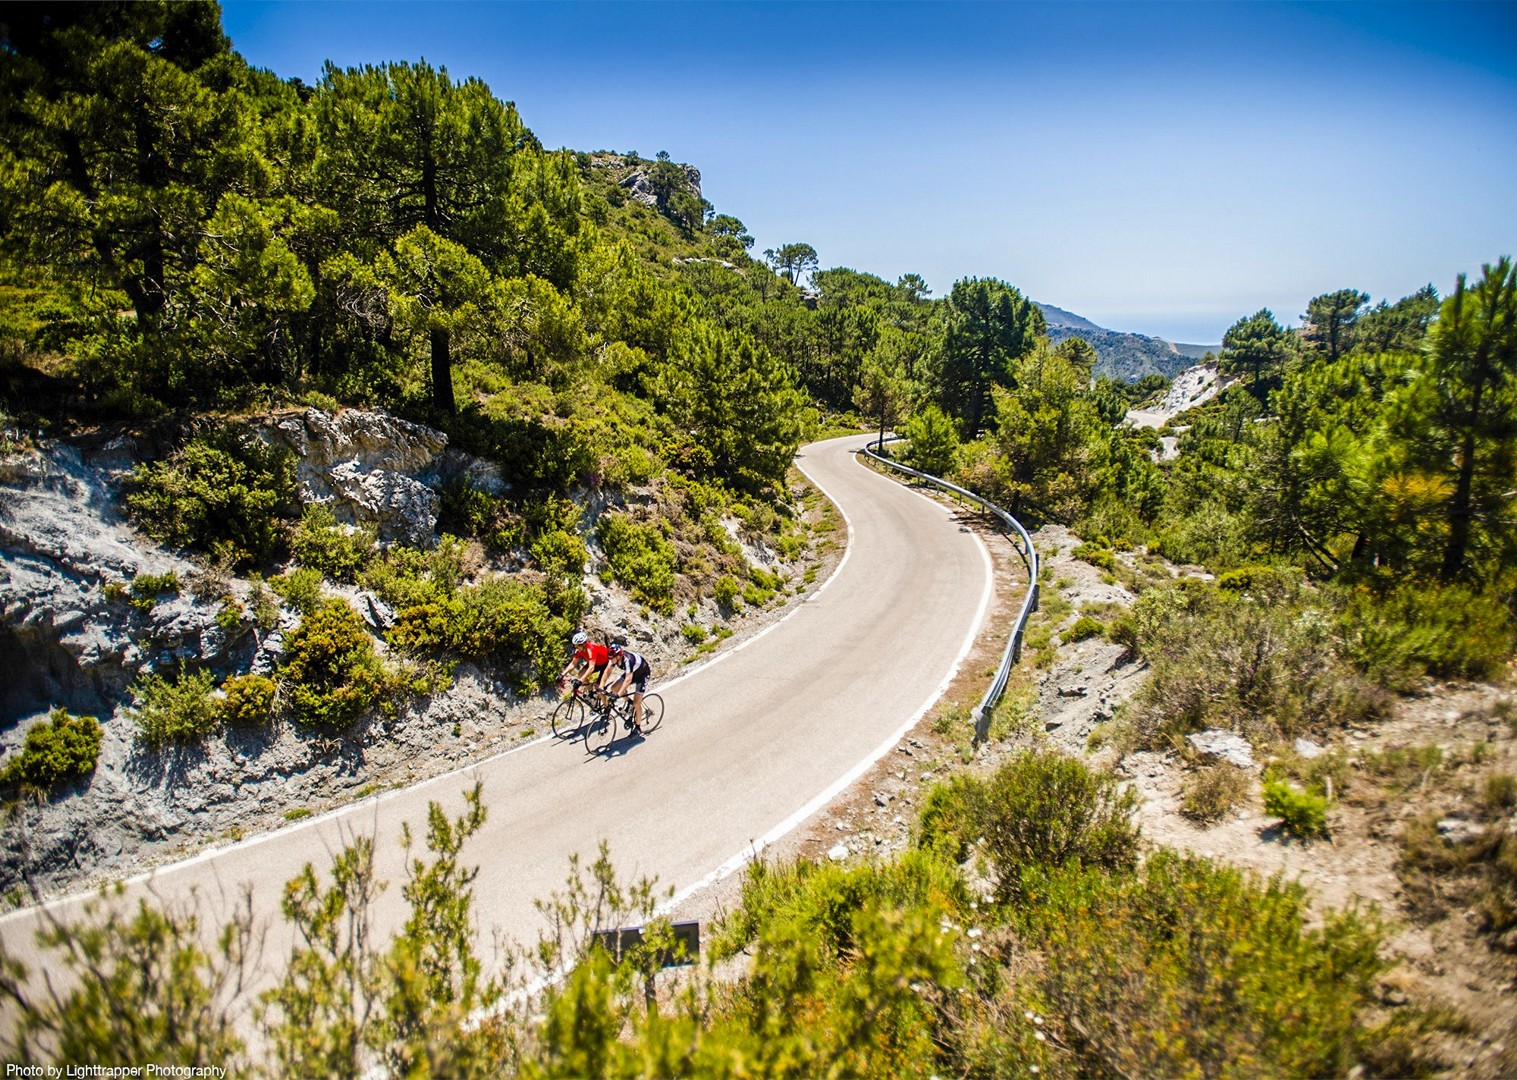 self-guided-road-cycling-tour-spanish-limestone-mountains-saddle-skedaddle.jpg - Southern Spain - Roads of Ronda - Self-Guided Road Cycling Holiday - Road Cycling